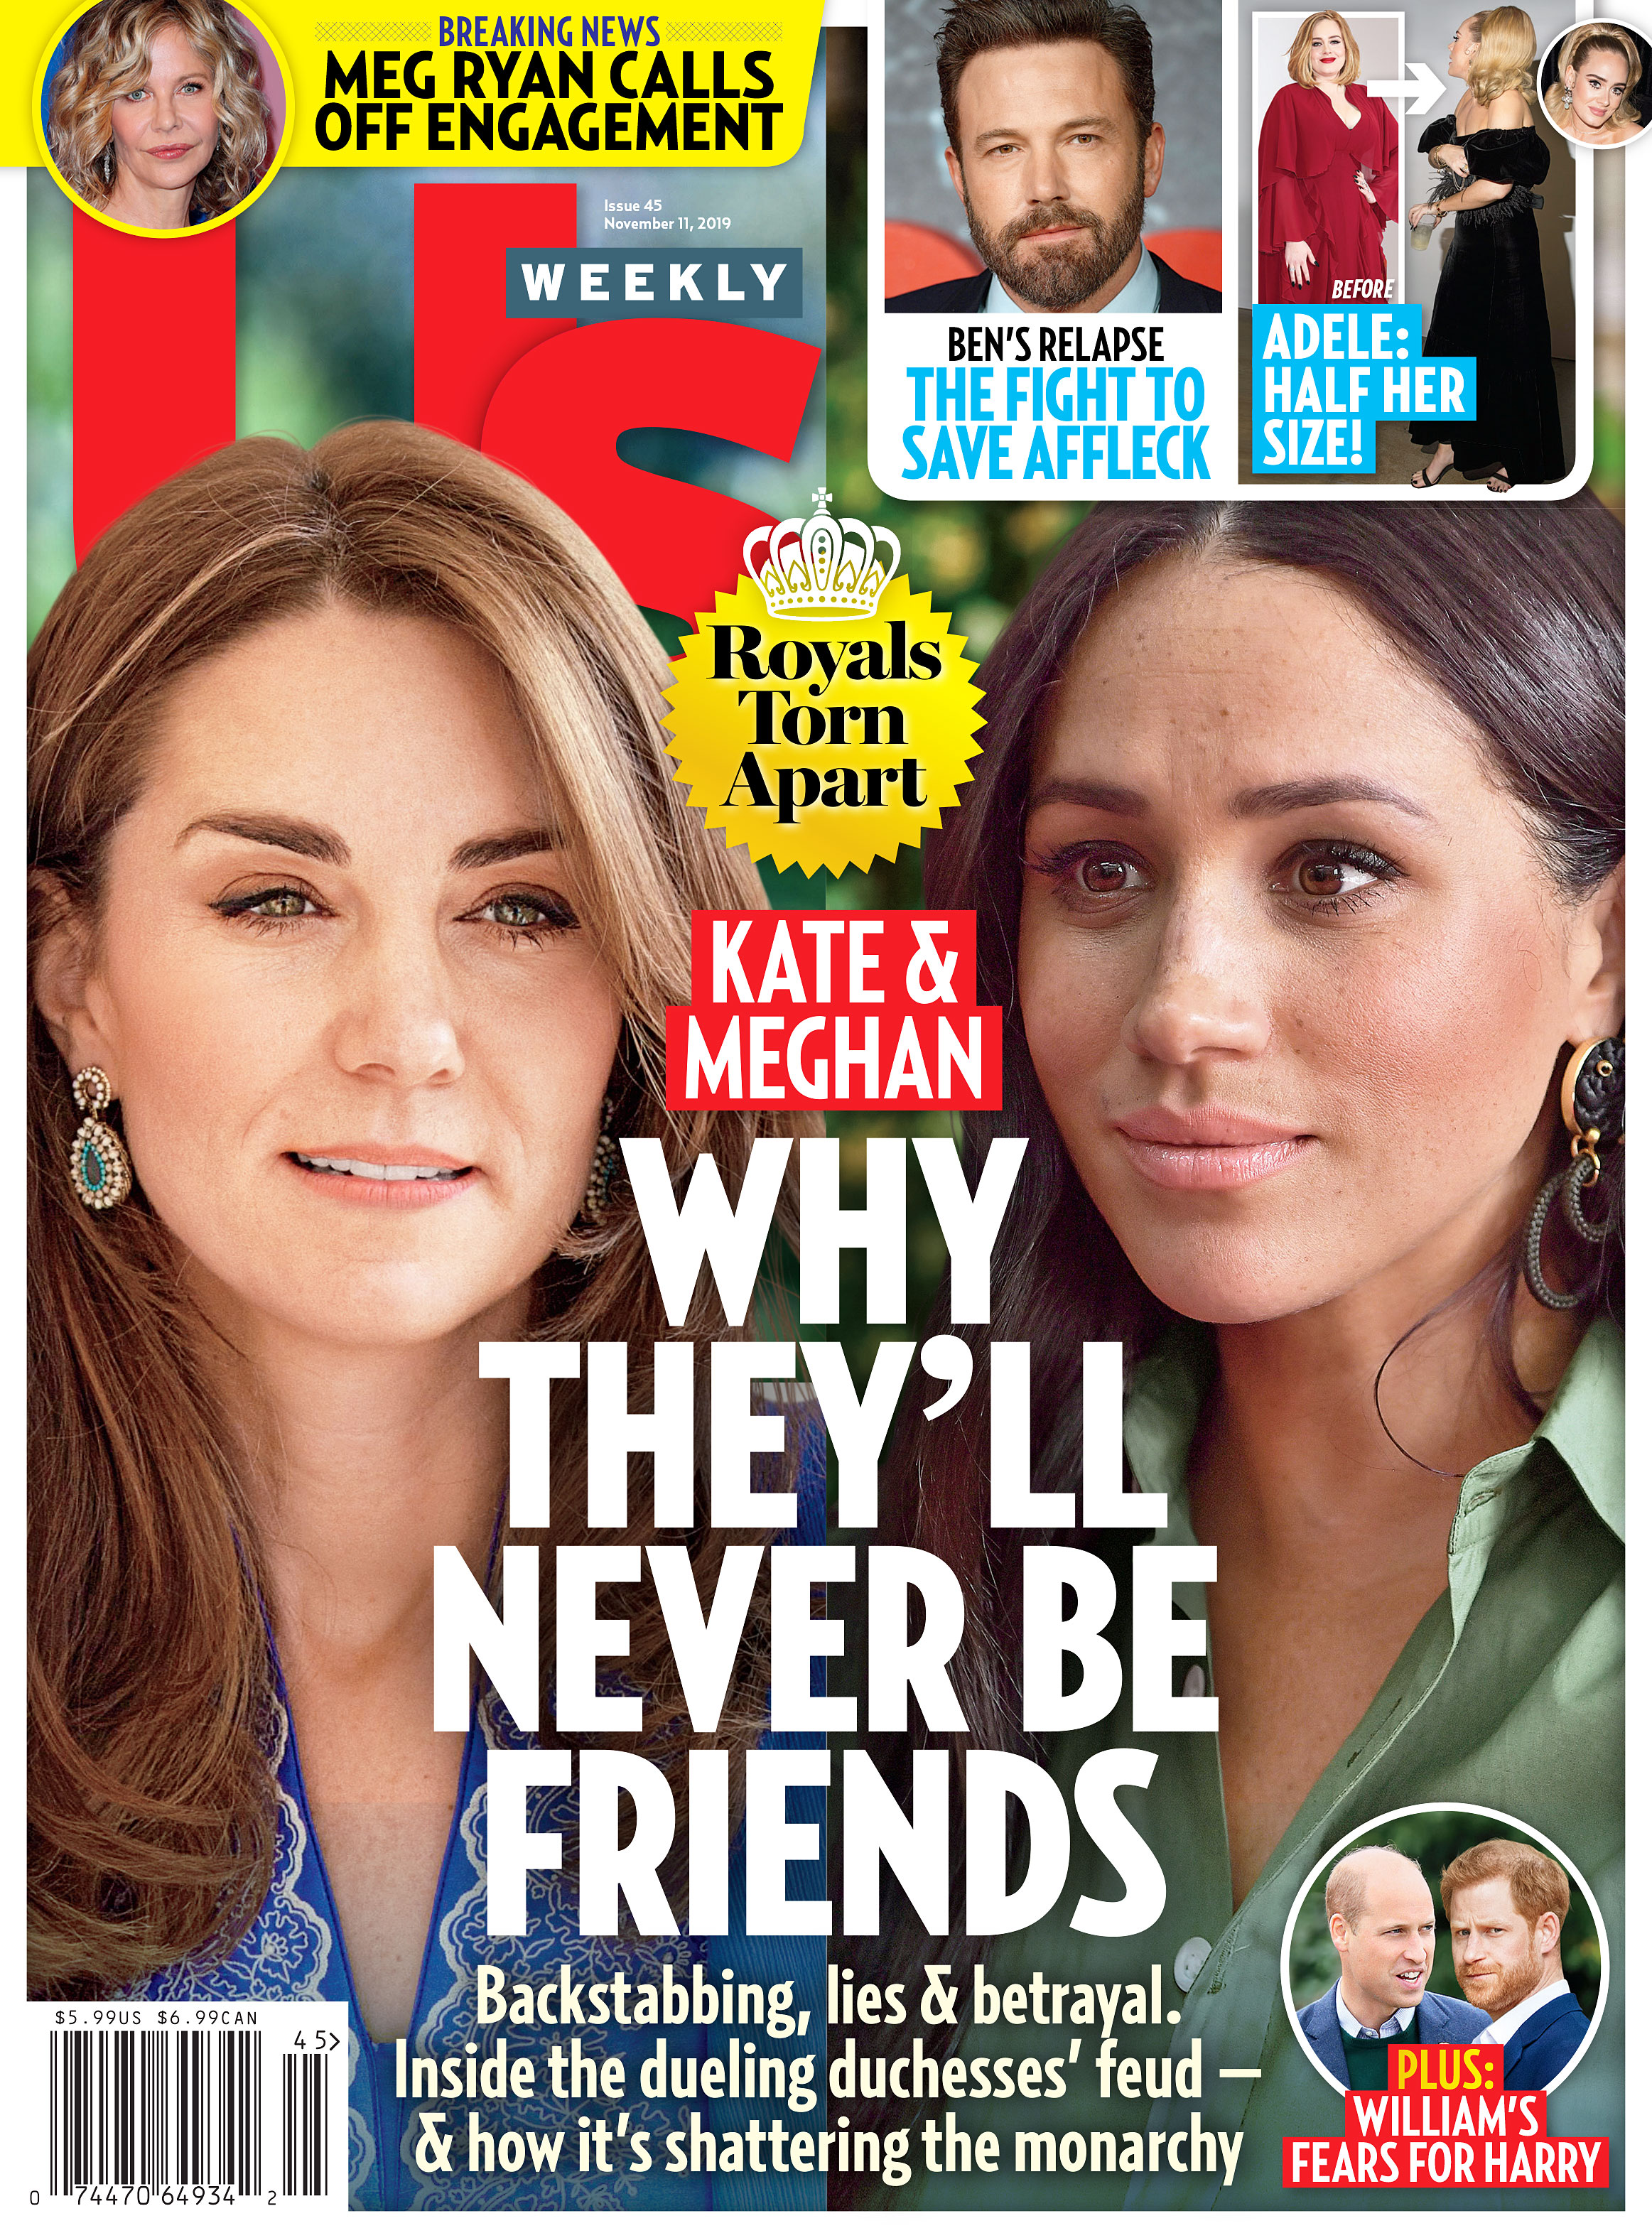 Kate Middleton Meghan Markle Don't Really Have a Relationship